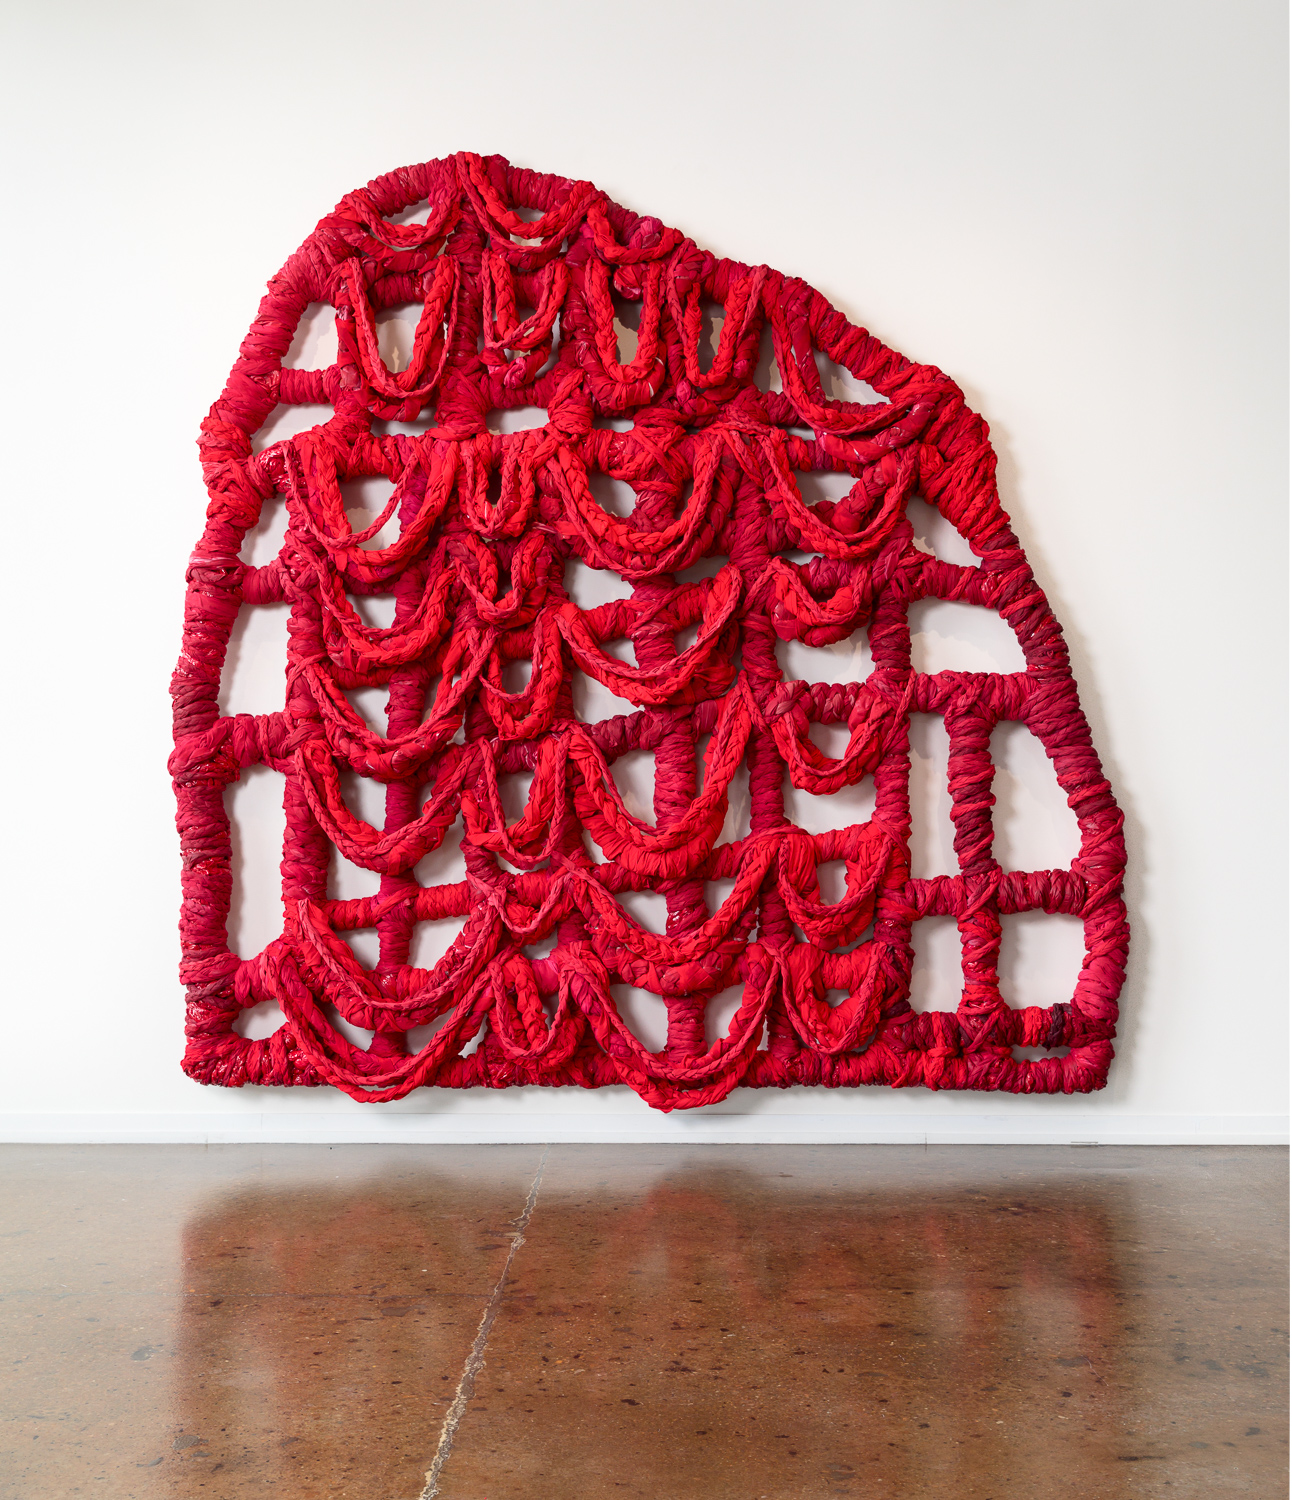 Red Gate, 118 x 120 x 10 inches, braided bedsheets, fabric dye, acrylic paint, acrylic resin, thread and wood, 2018